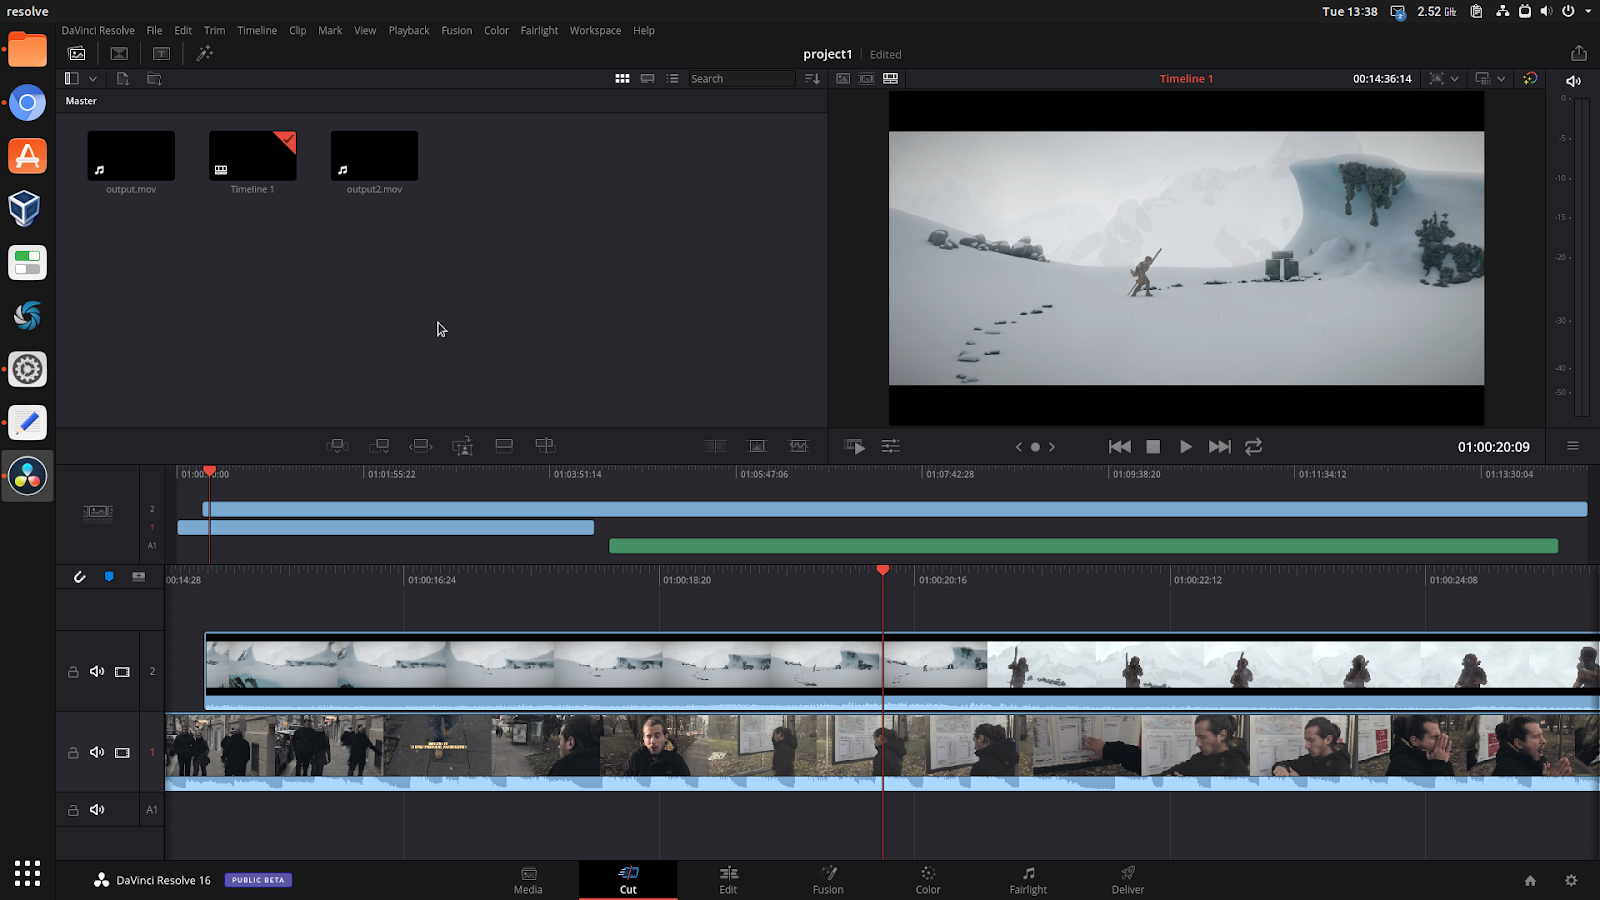 Hollywood-Grade Video Editor DaVinci Resolve 16 Beta Released